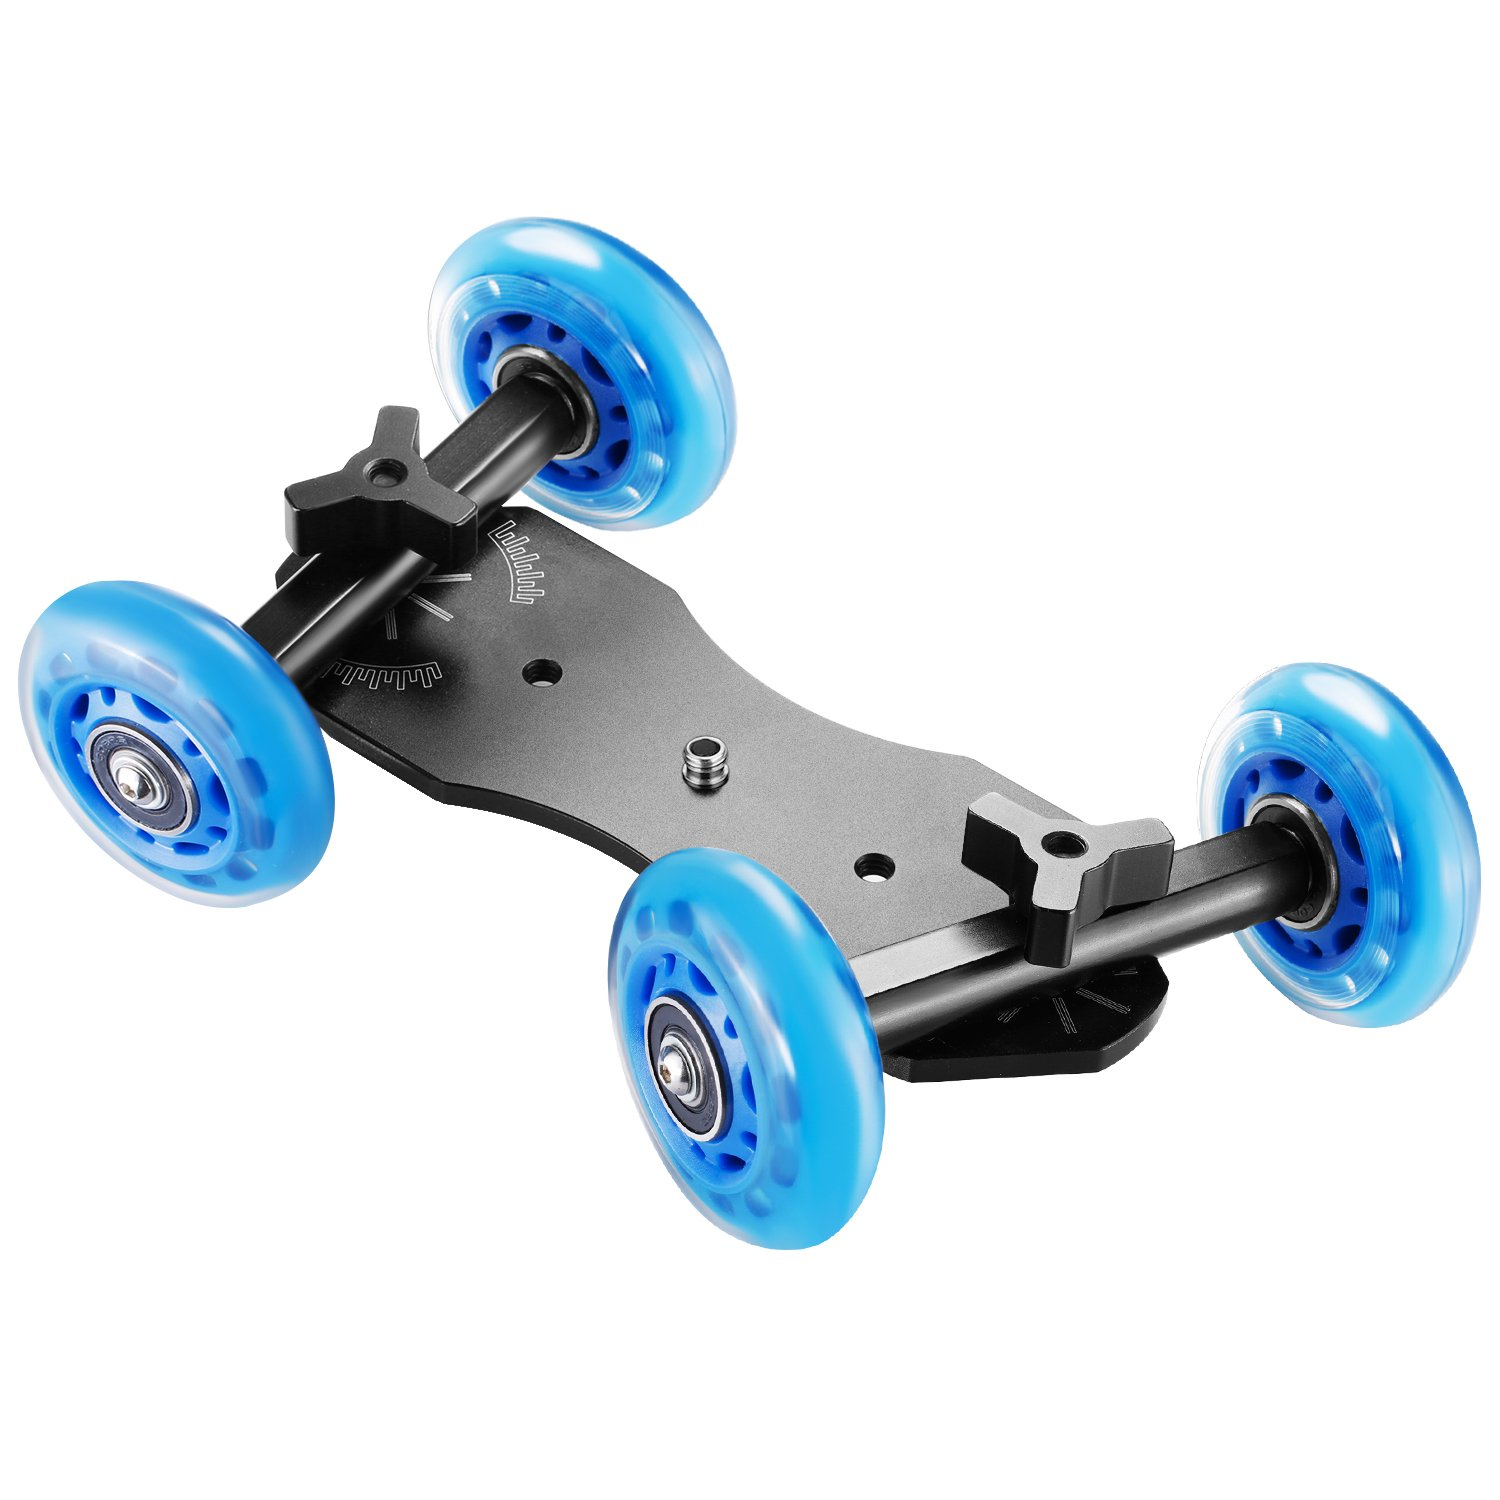 Black//Blue Neewer Noise-Free Table Dolly Car Rolling Slider Skater Aluminum Alloy Board and Rotatable Fluid Silicone Wheels,22 Pounds//10 Kilograms Load Capacity for DSLRs Video Camcorders